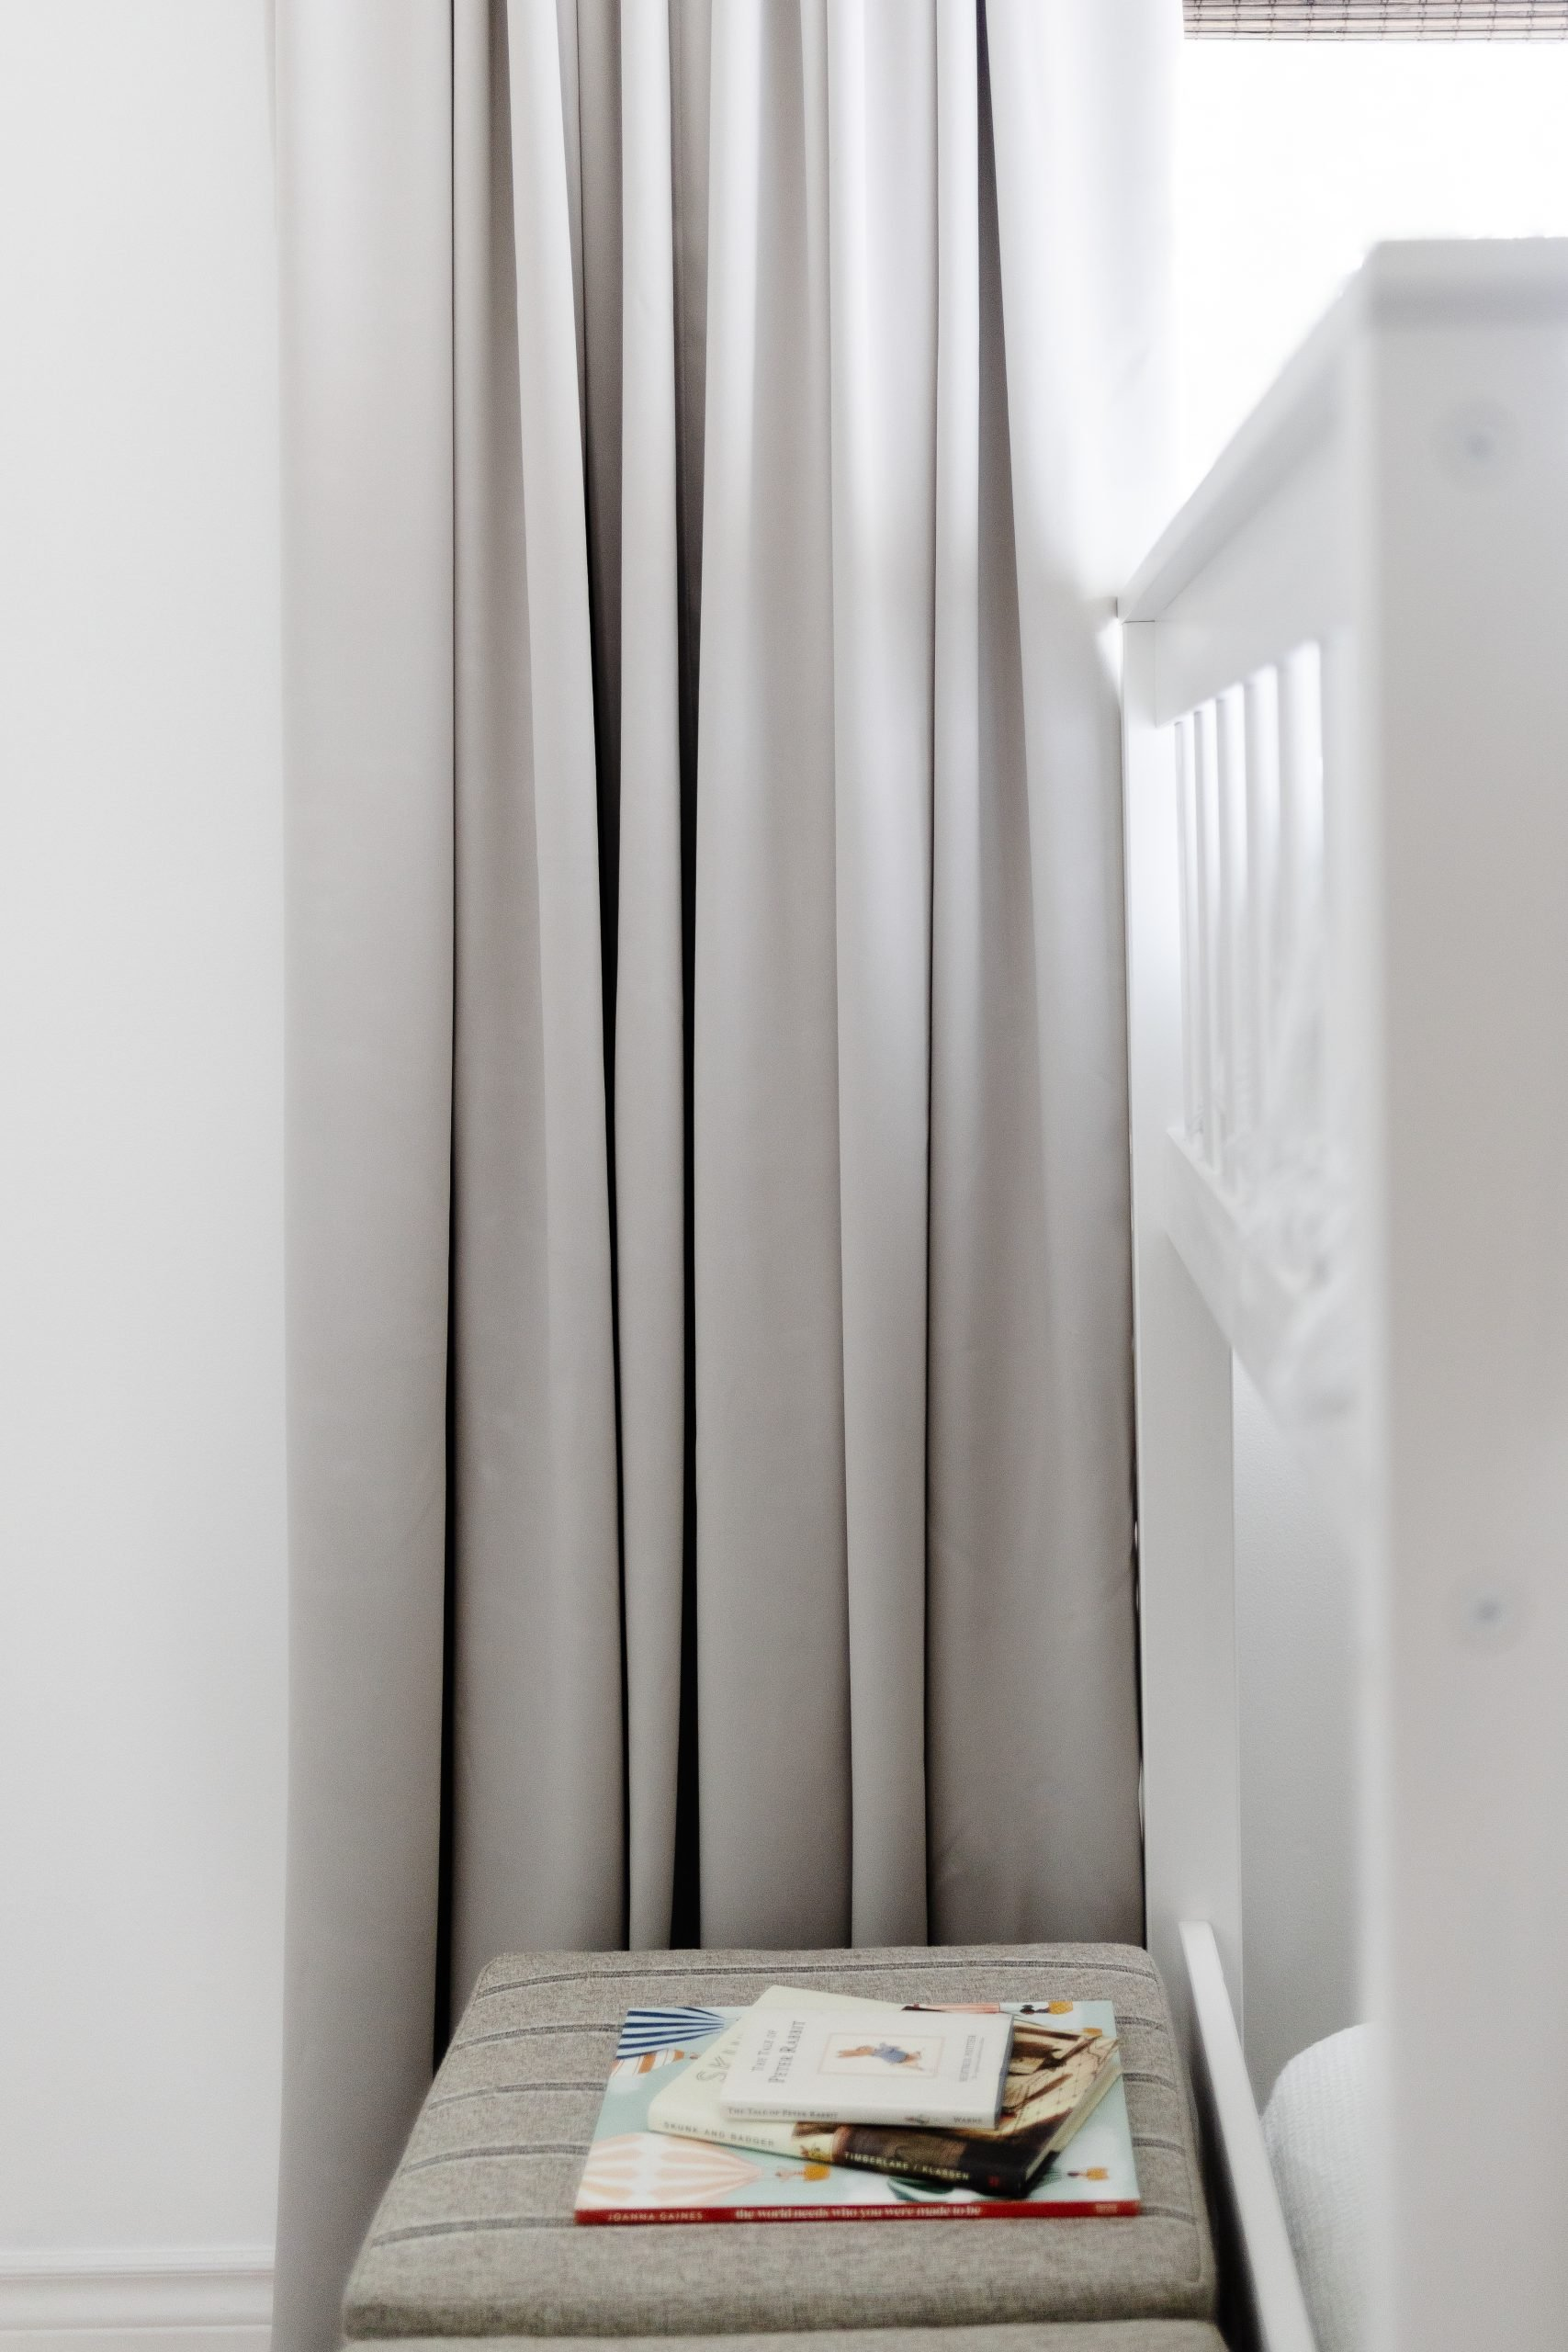 DIY High-End Curtains That Won't Break The Bank. If your like a high-end look but you don't want to spend over 1,000 on curtains, this curtain tutorial is FOR YOU. All four panels cost under 100 dollars and there was no sewing involved!